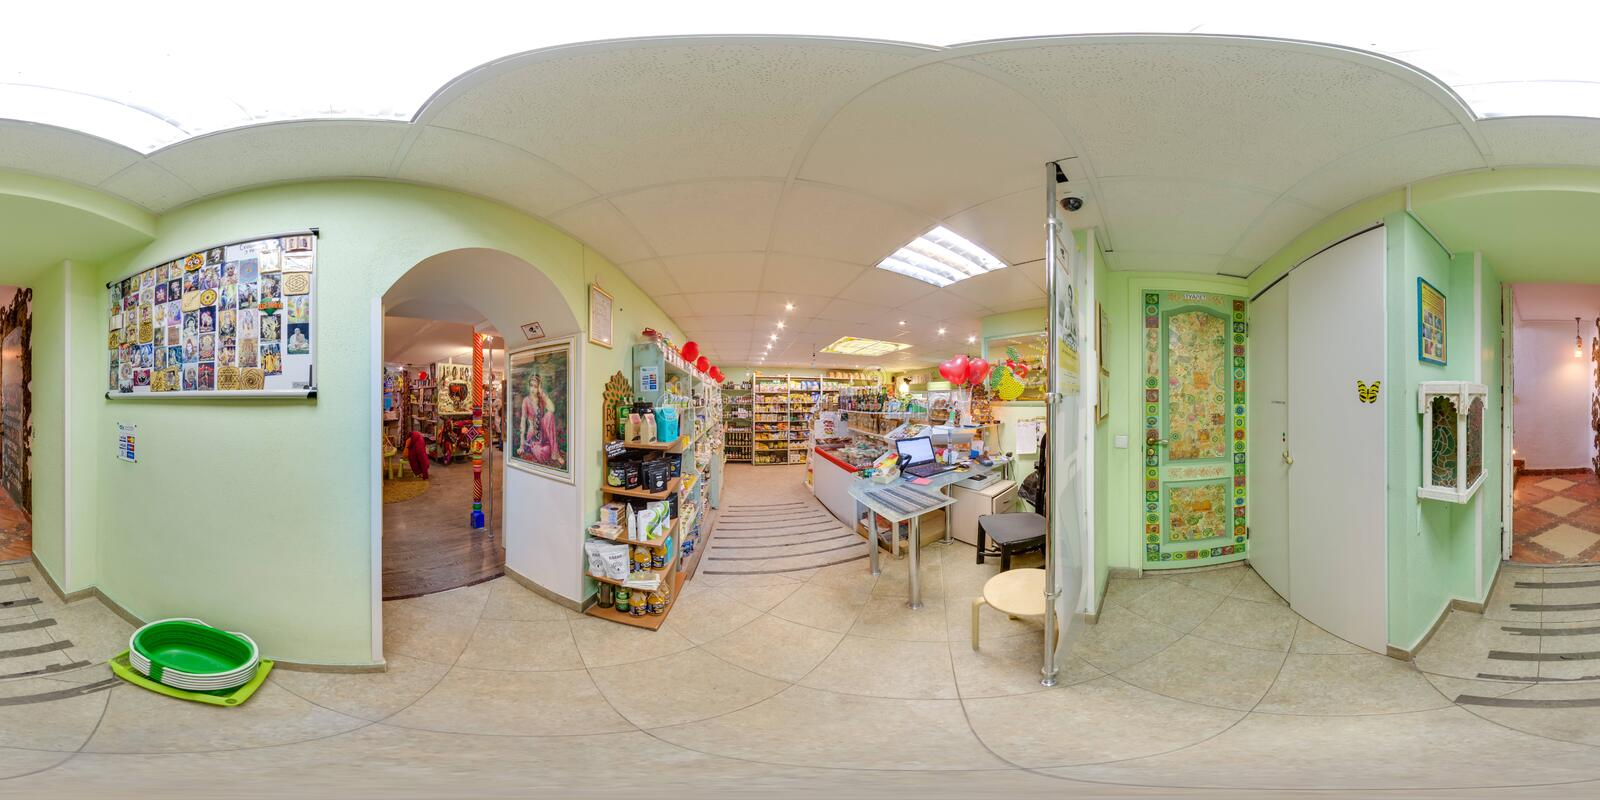 Interior of eco-store with food and fridges. 3D spherical panorama with 360 degree viewing angle. Ready for virtual reality in vr. Interior of eco-store with royalty free stock images